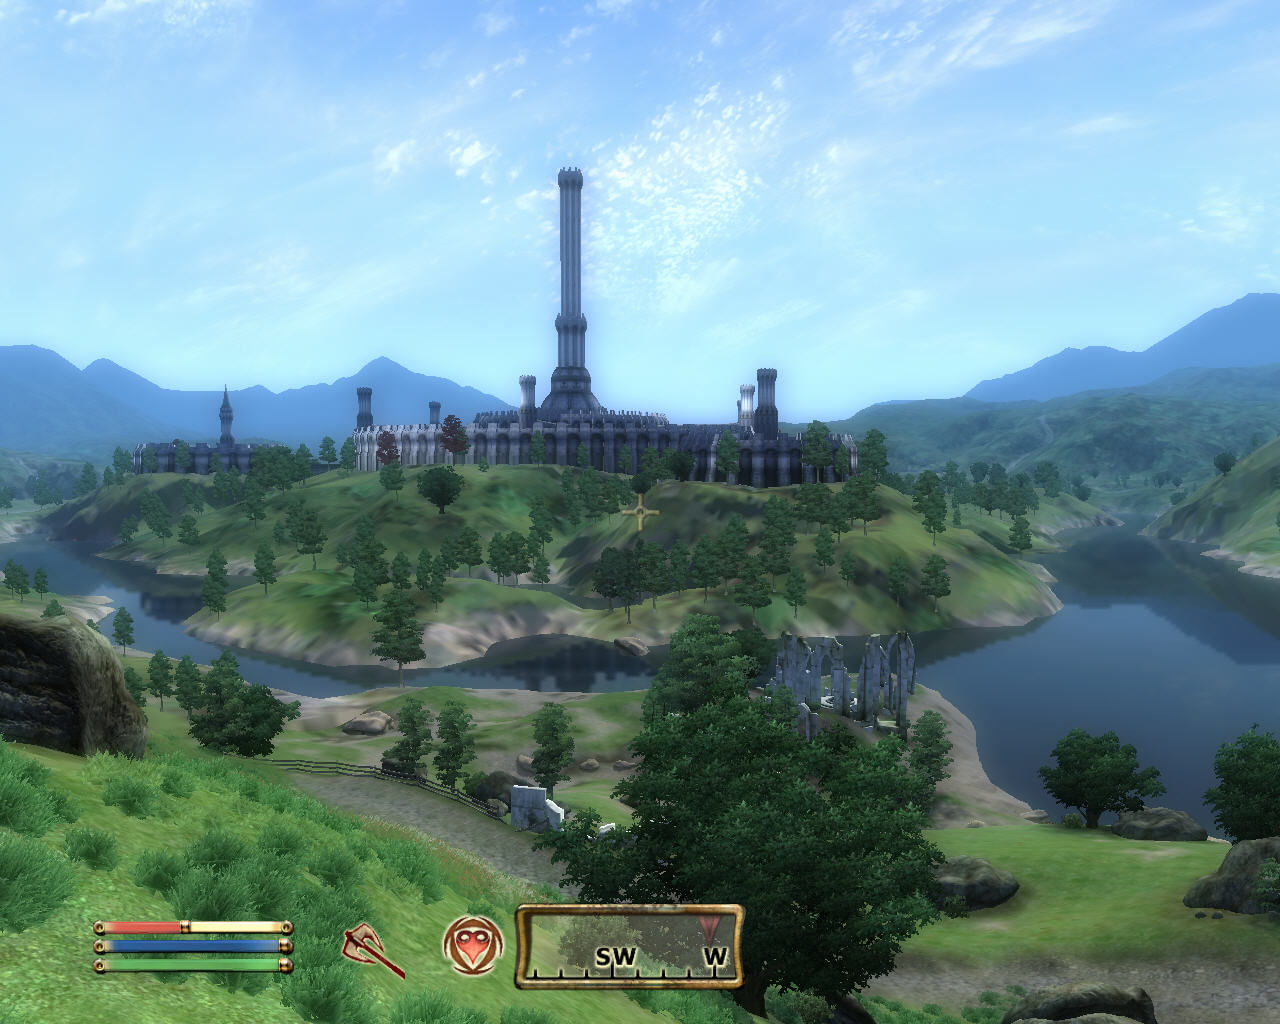 http://www.mobygames.com/images/shots/l/157953-the-elder-scrolls-iv-oblivion-windows-screenshot-view-of-the.jpg